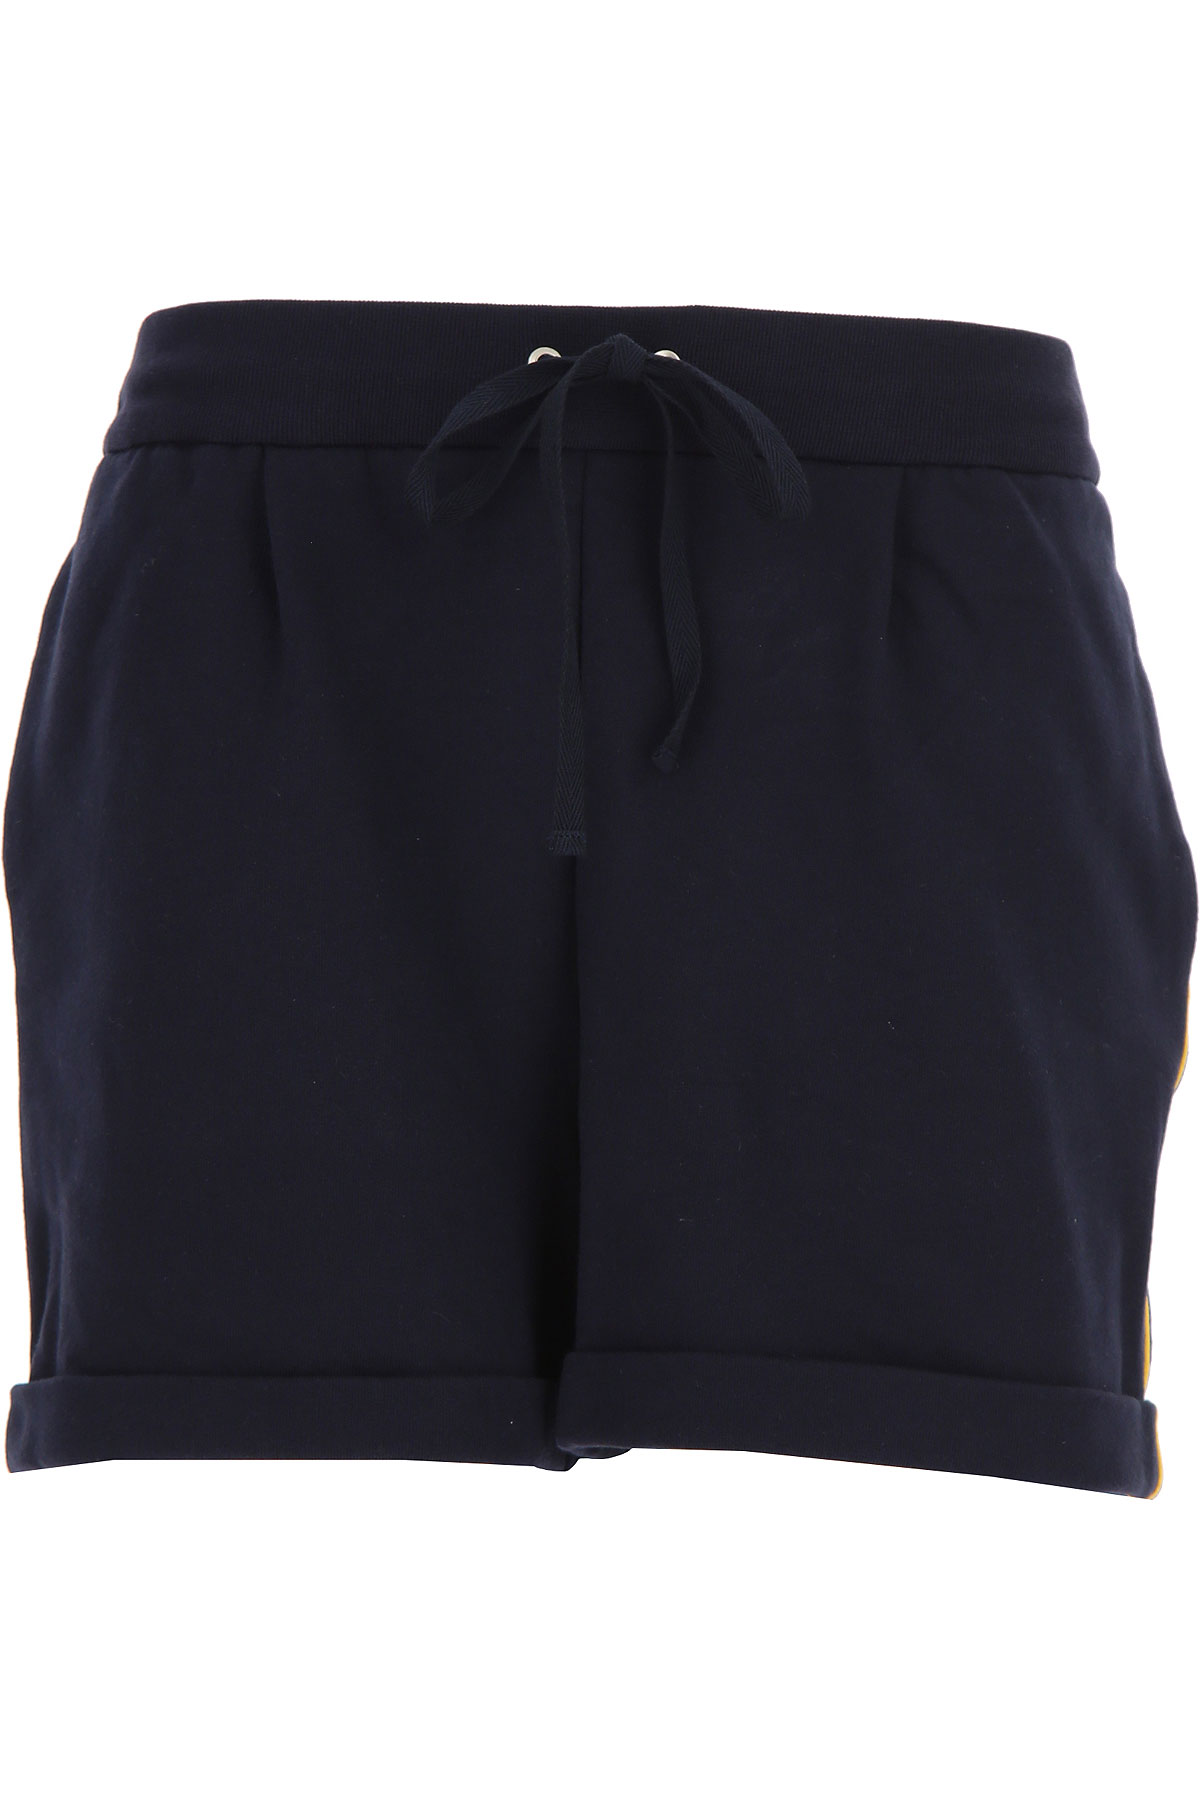 Alberta Ferretti Shorts for Women On Sale, navy, Cotton, 2019, XS (IT 38) S (IT 40) M (IT 42 )